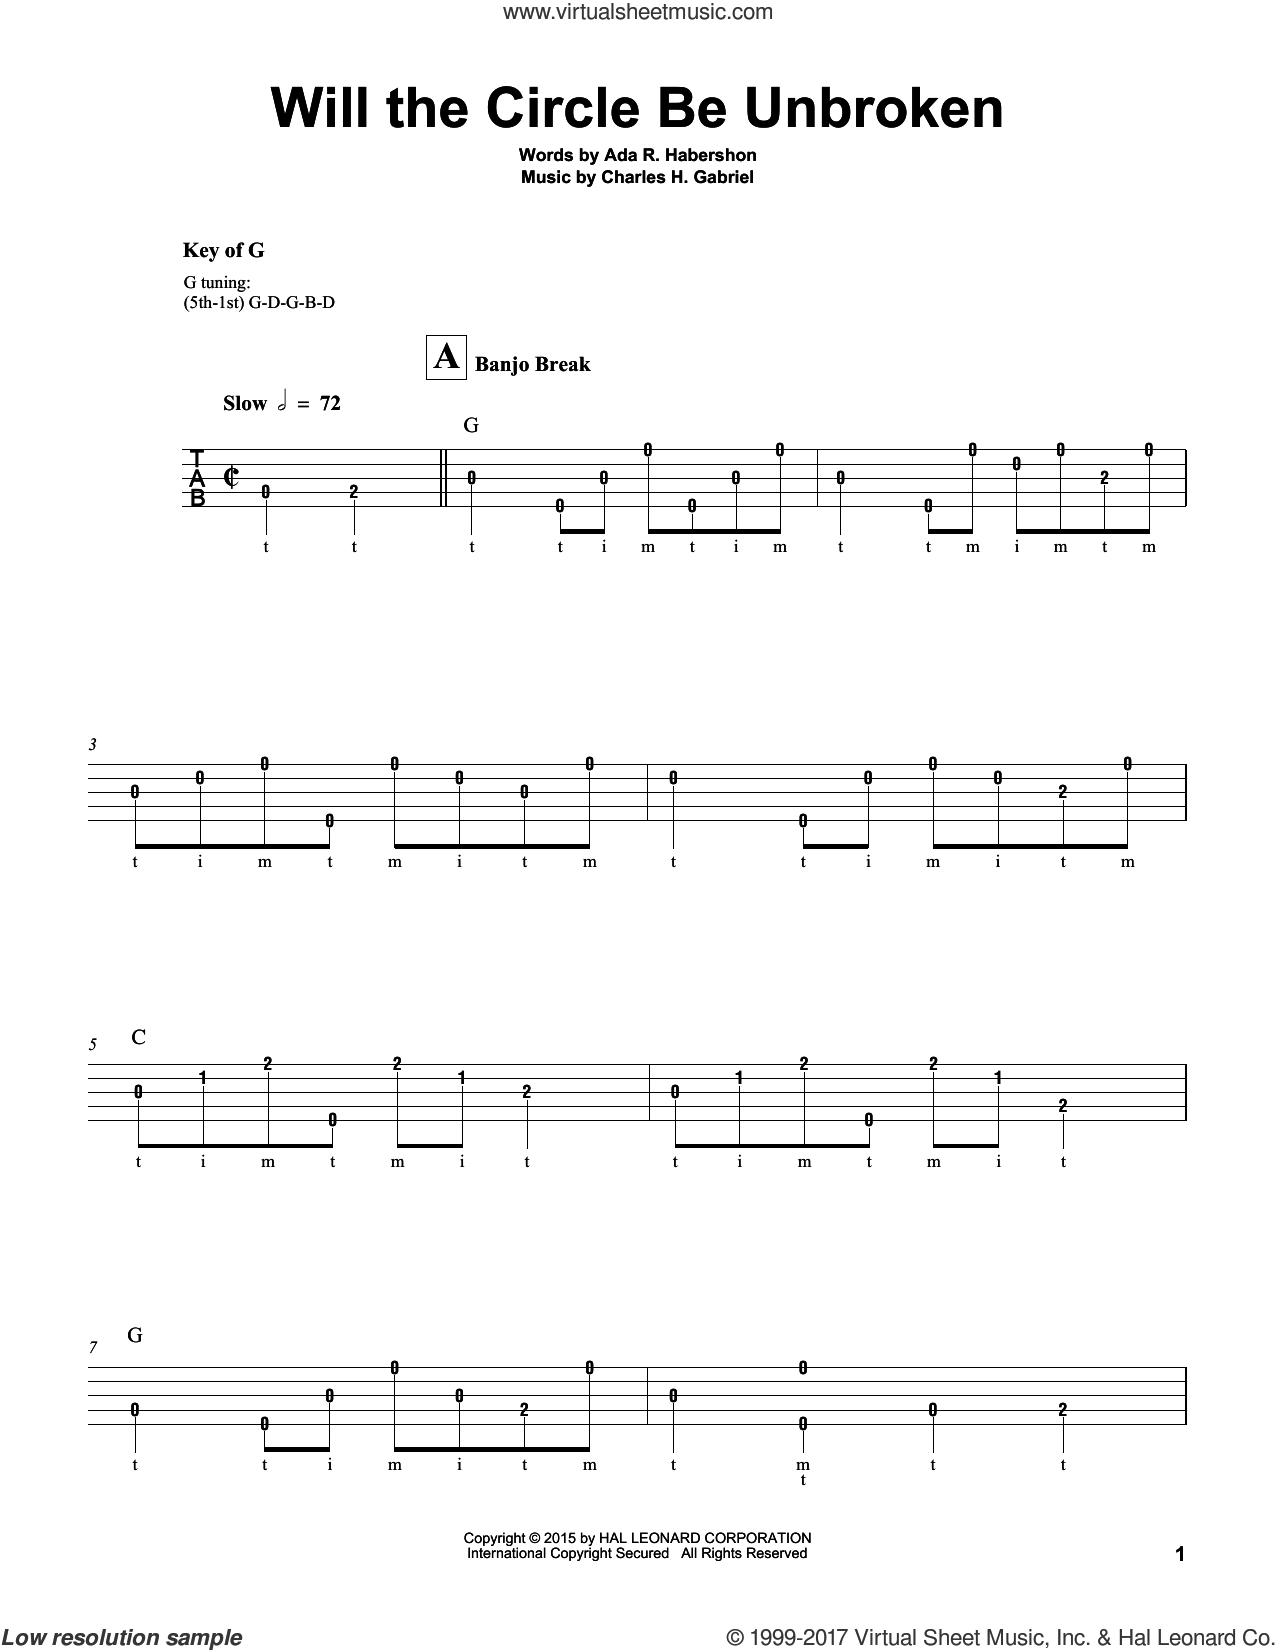 Will The Circle Be Unbroken sheet music for banjo solo by Charles H. Gabriel and Ada R. Habershon, intermediate skill level